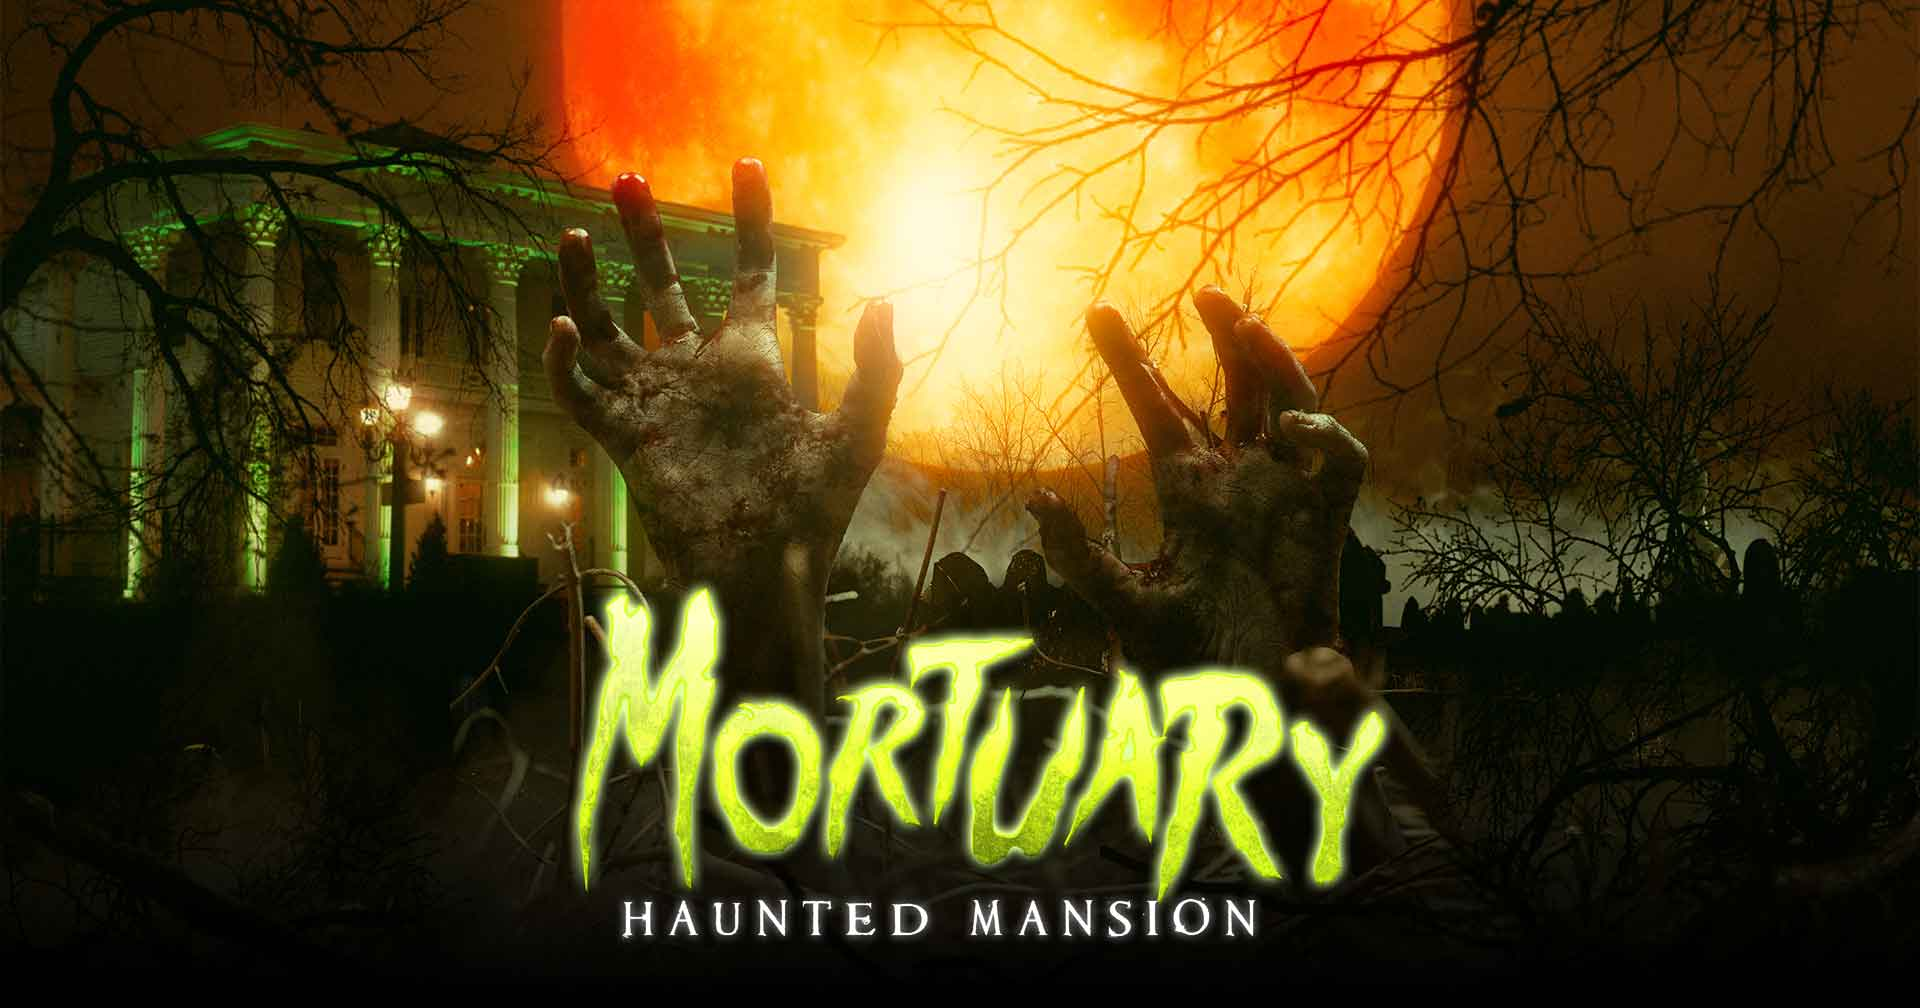 buy tickets for the mortuary haunted house